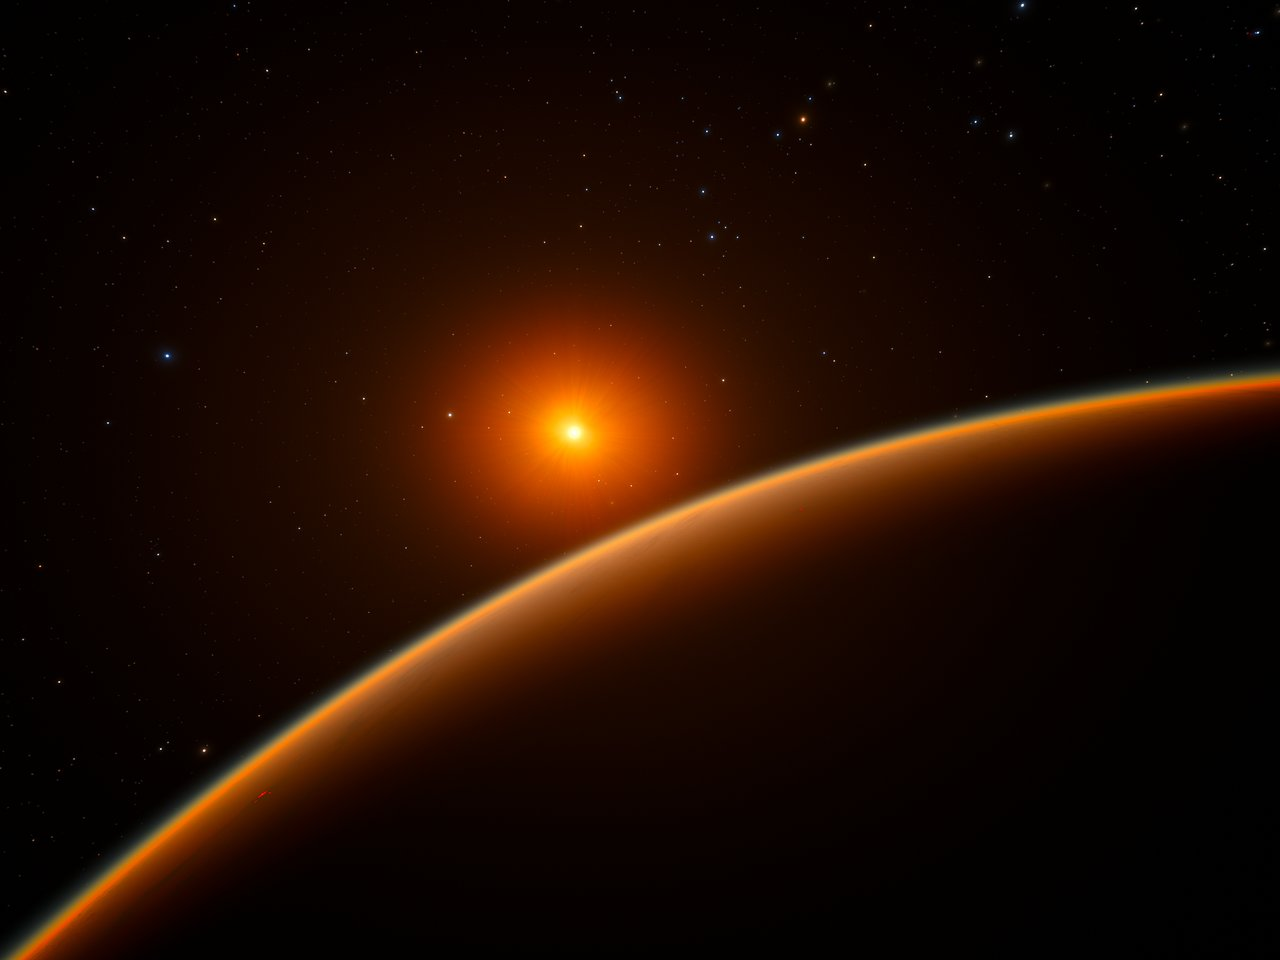 Super Earth That Could Hold Alien Life Has Just Been Discovered Artist's impression of the super Earth exoplanet LHS 1140b